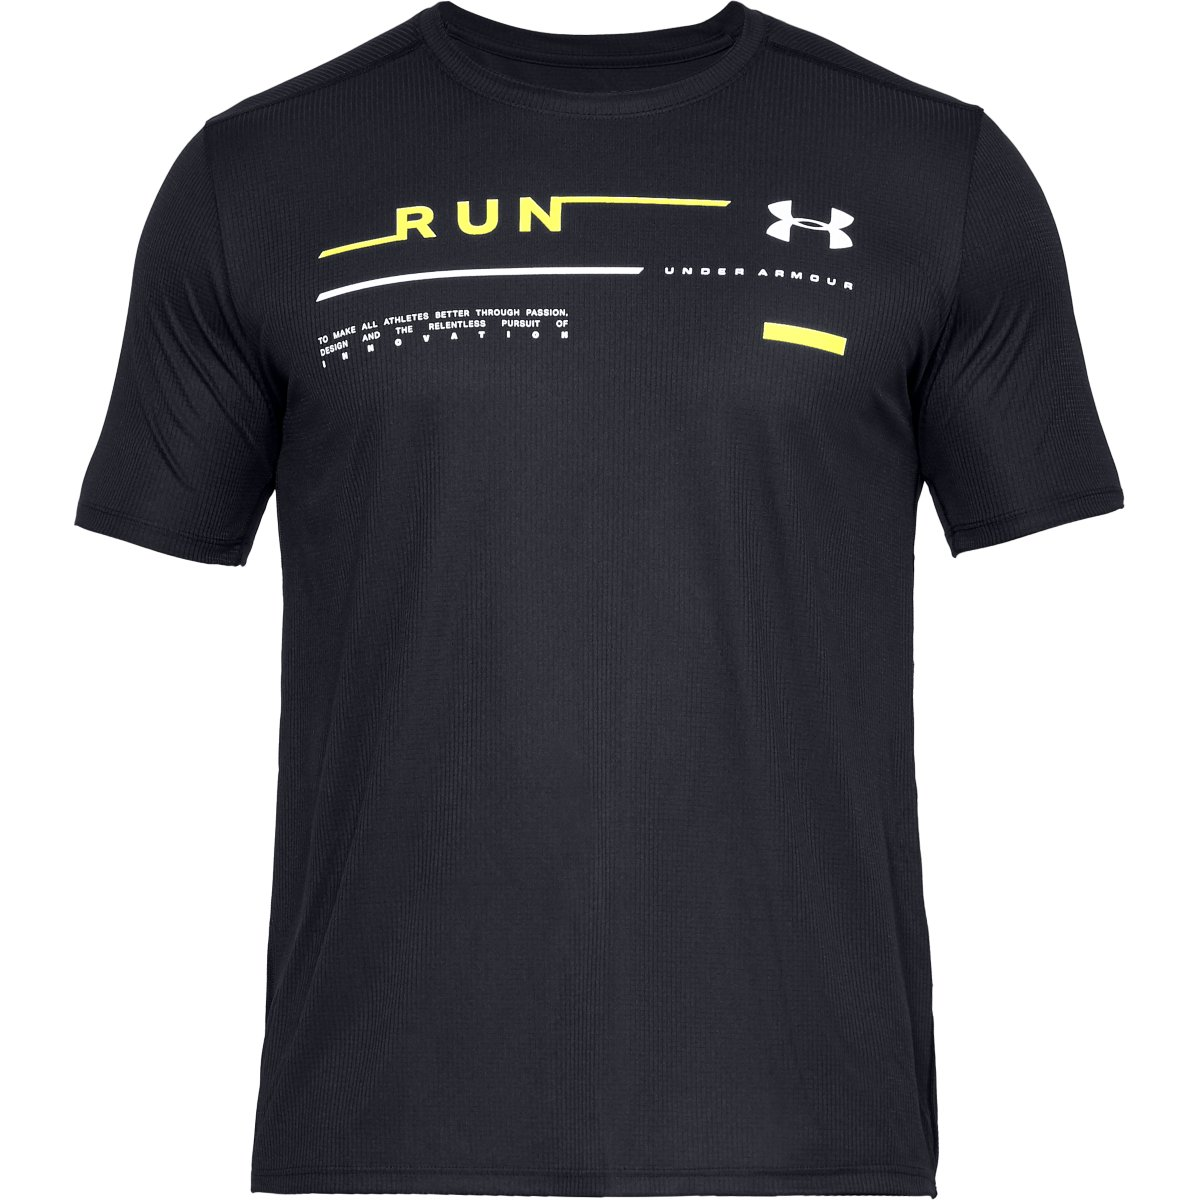 Under Armour Graphic Run Tee | Jerseys